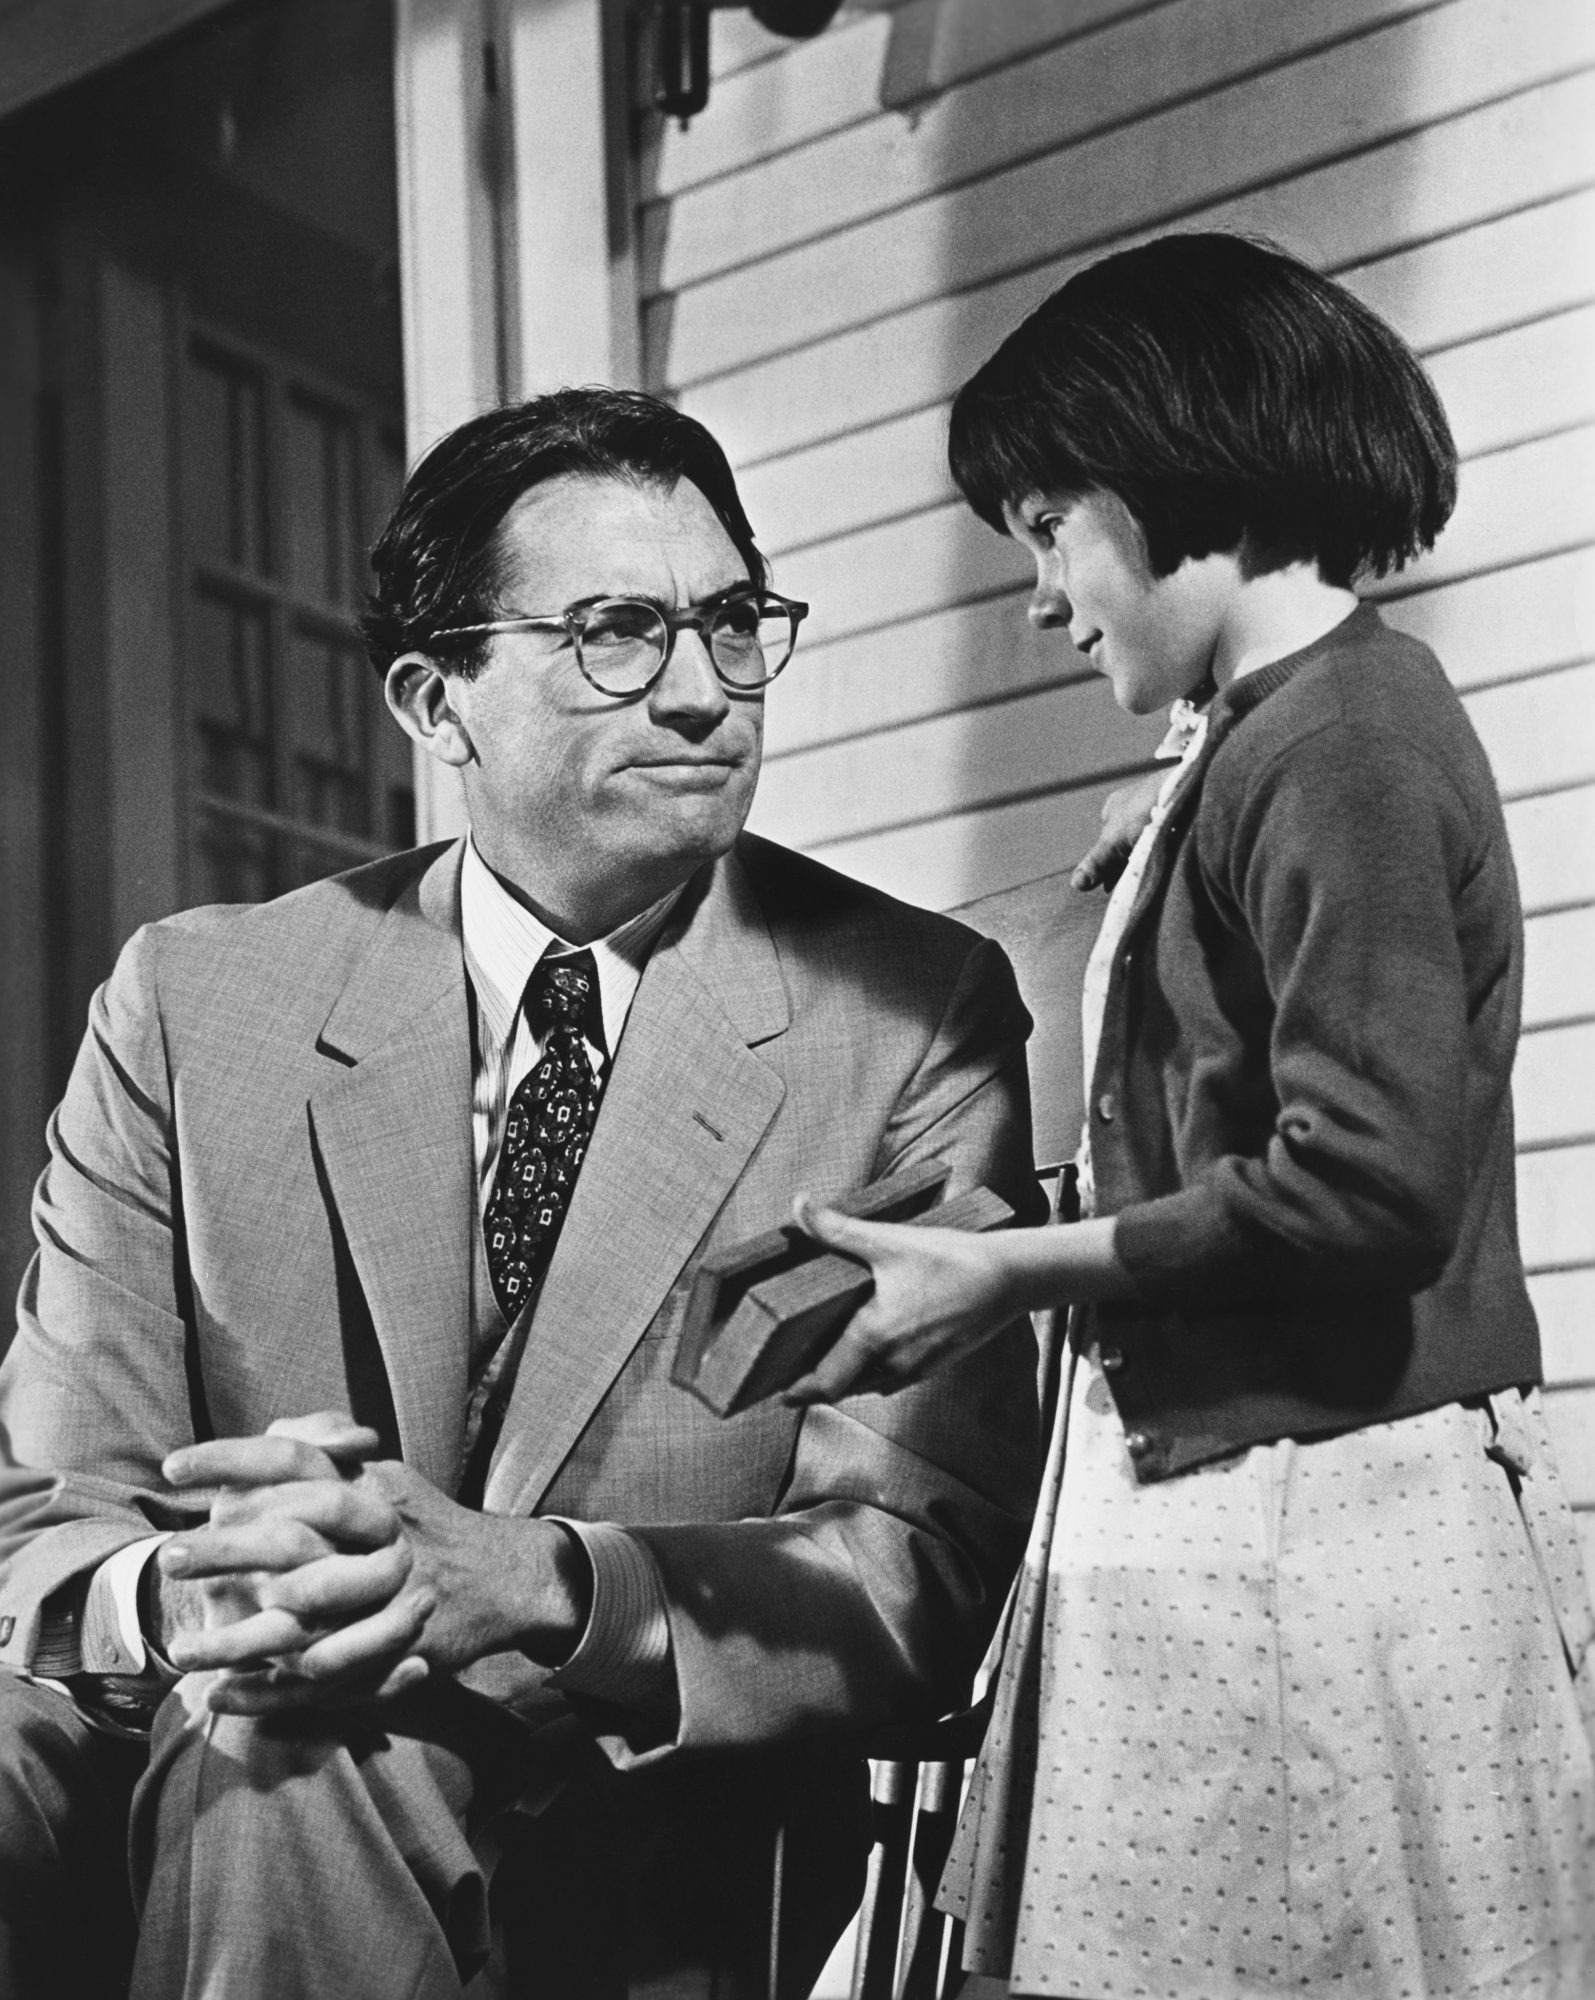 atticus scout to kill a mockingbird